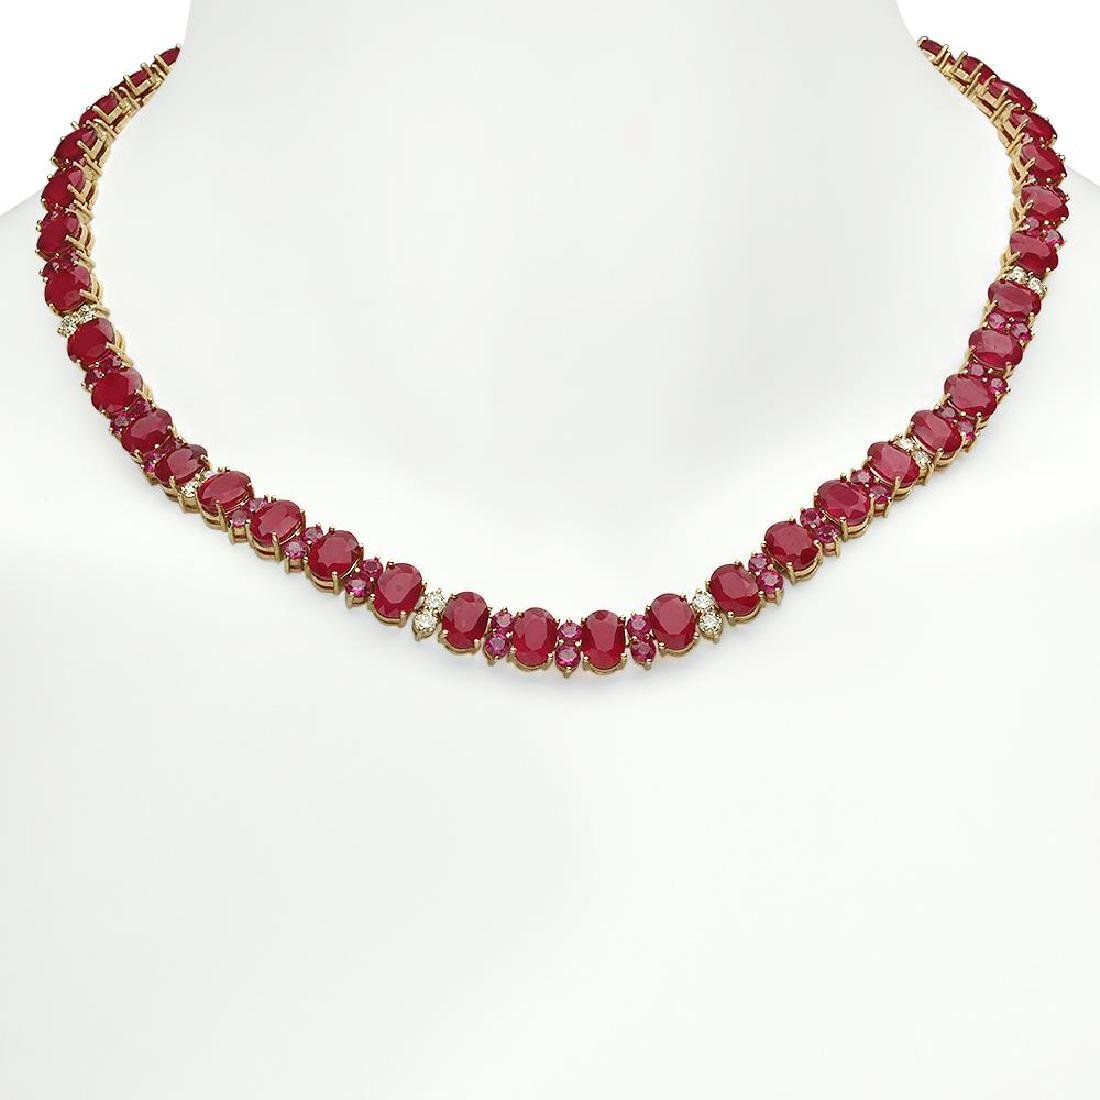 14K Gold 95.98ct Ruby 2.56ct Diamond Necklace